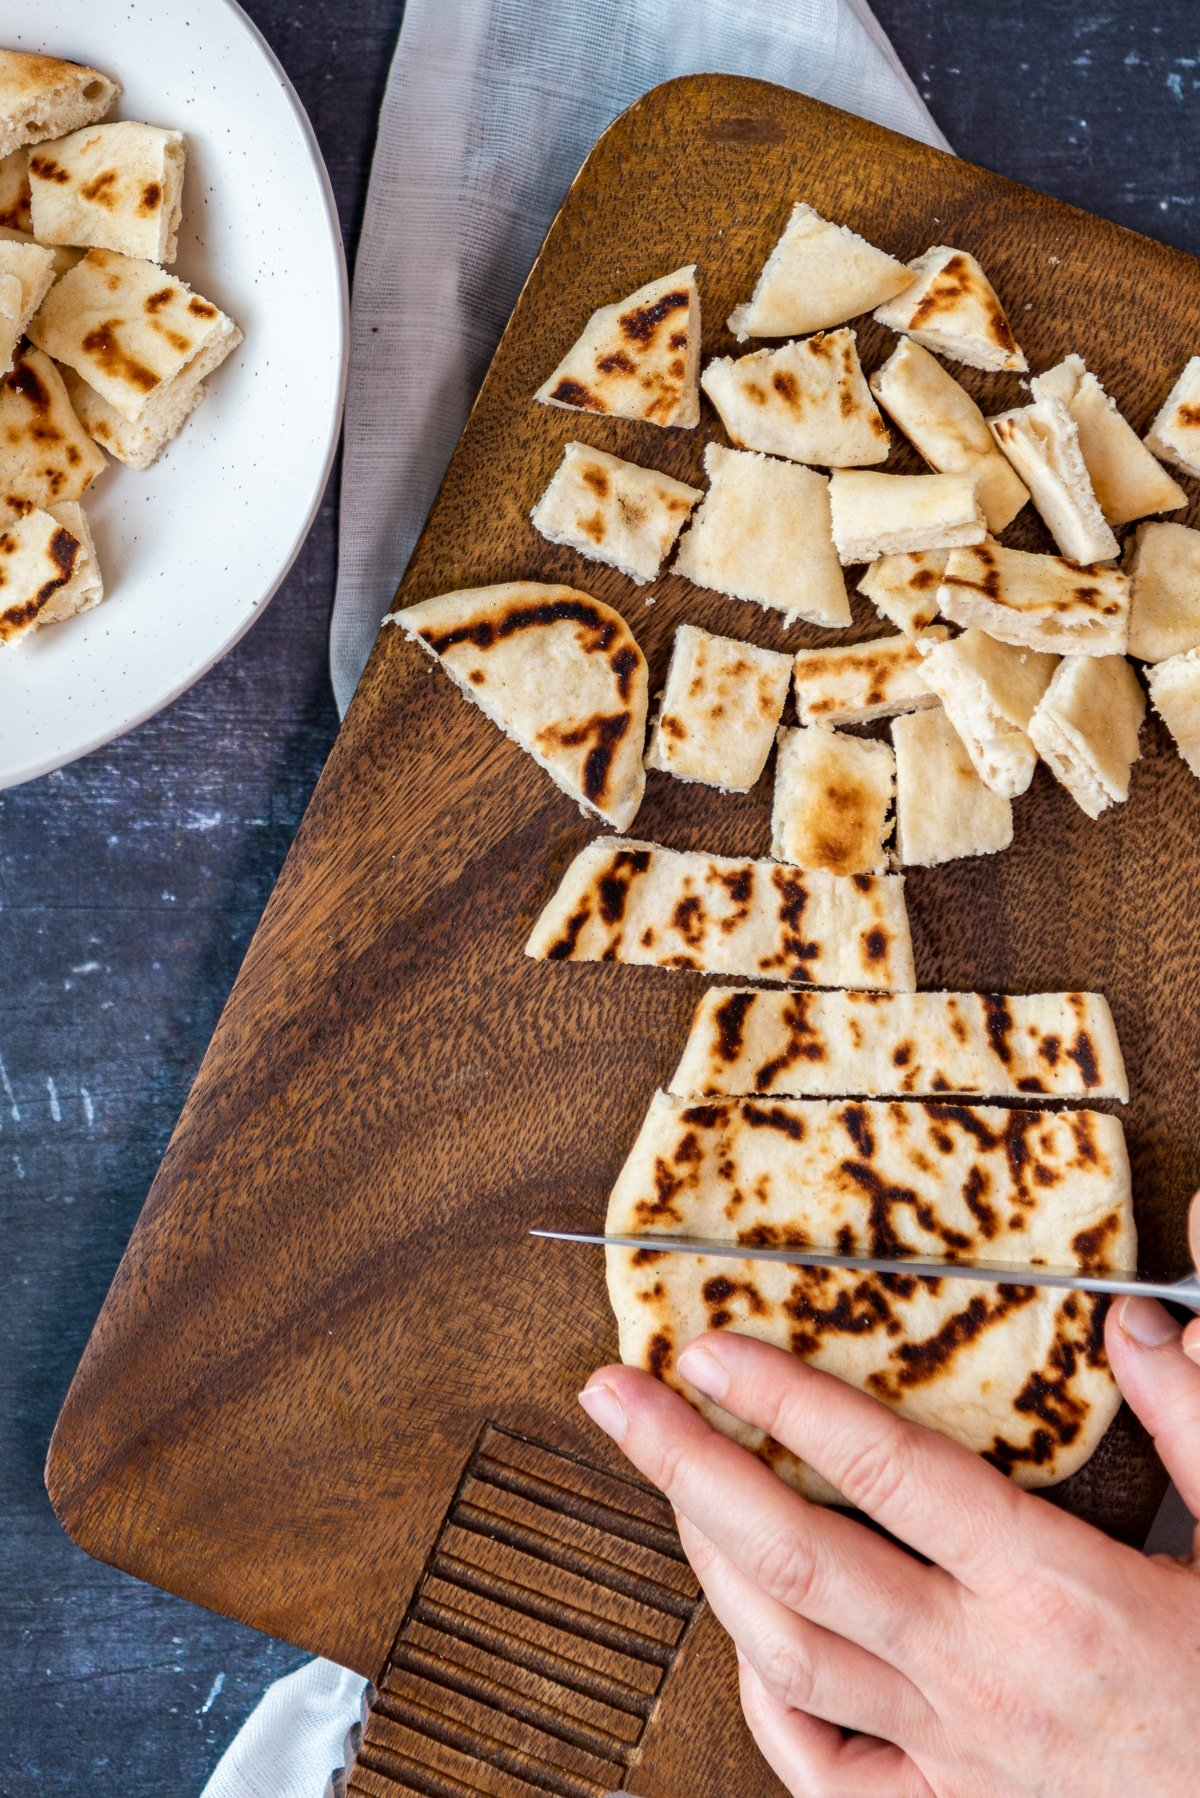 Hands cutting pide bread into chunks on a wooden board.